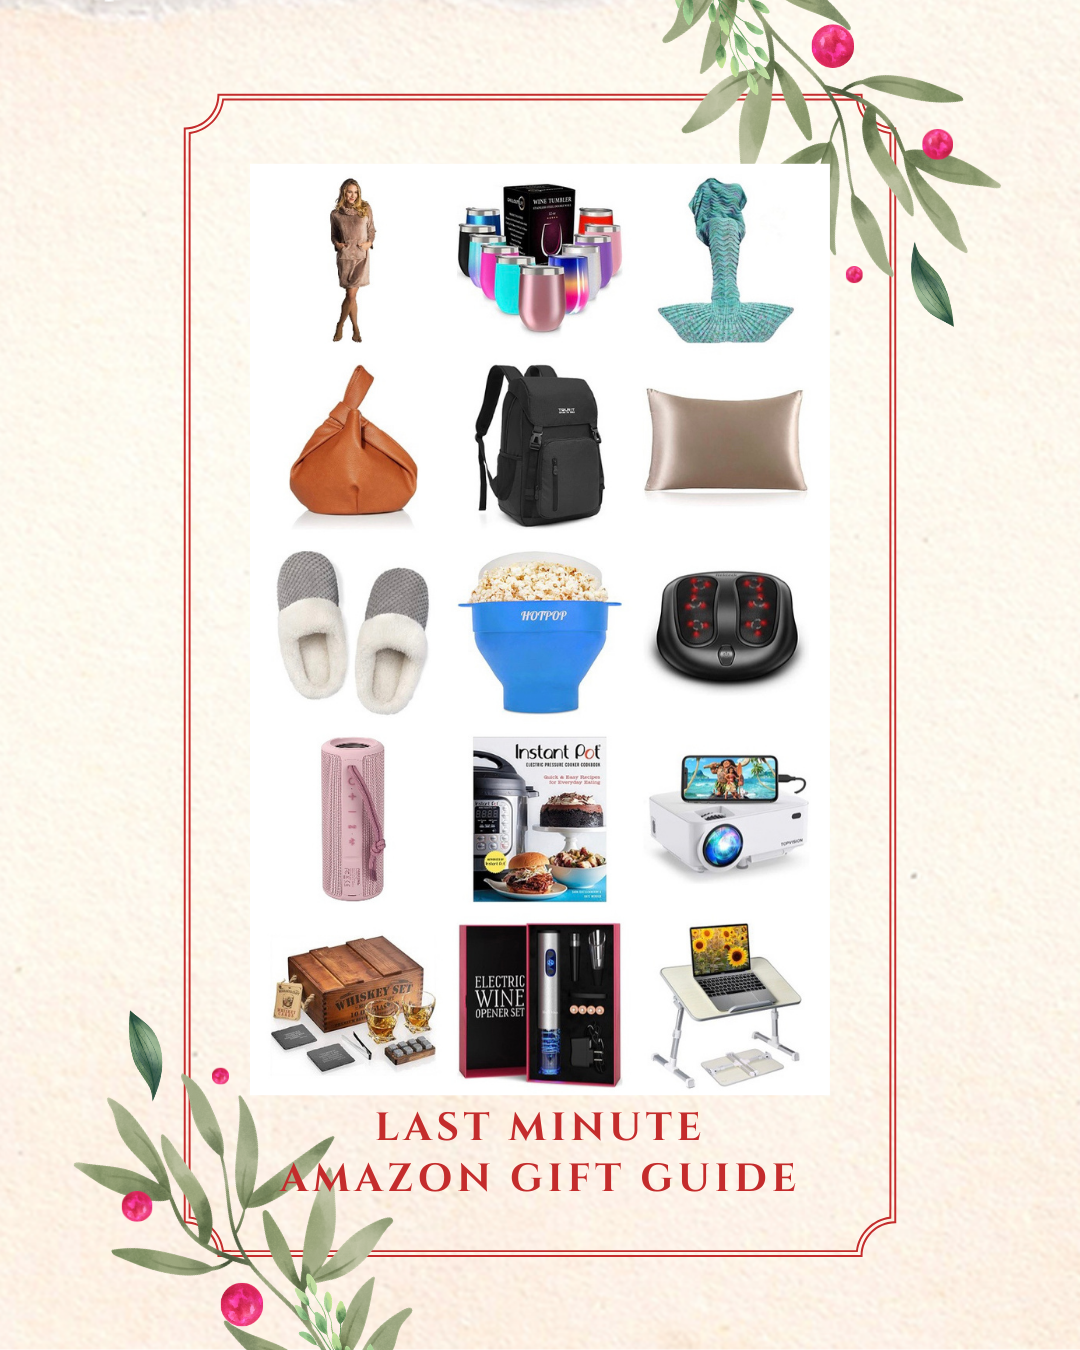 Top blogger Emily of Fabulously Overdressed shares her Last Minute Amazon Gift Guide